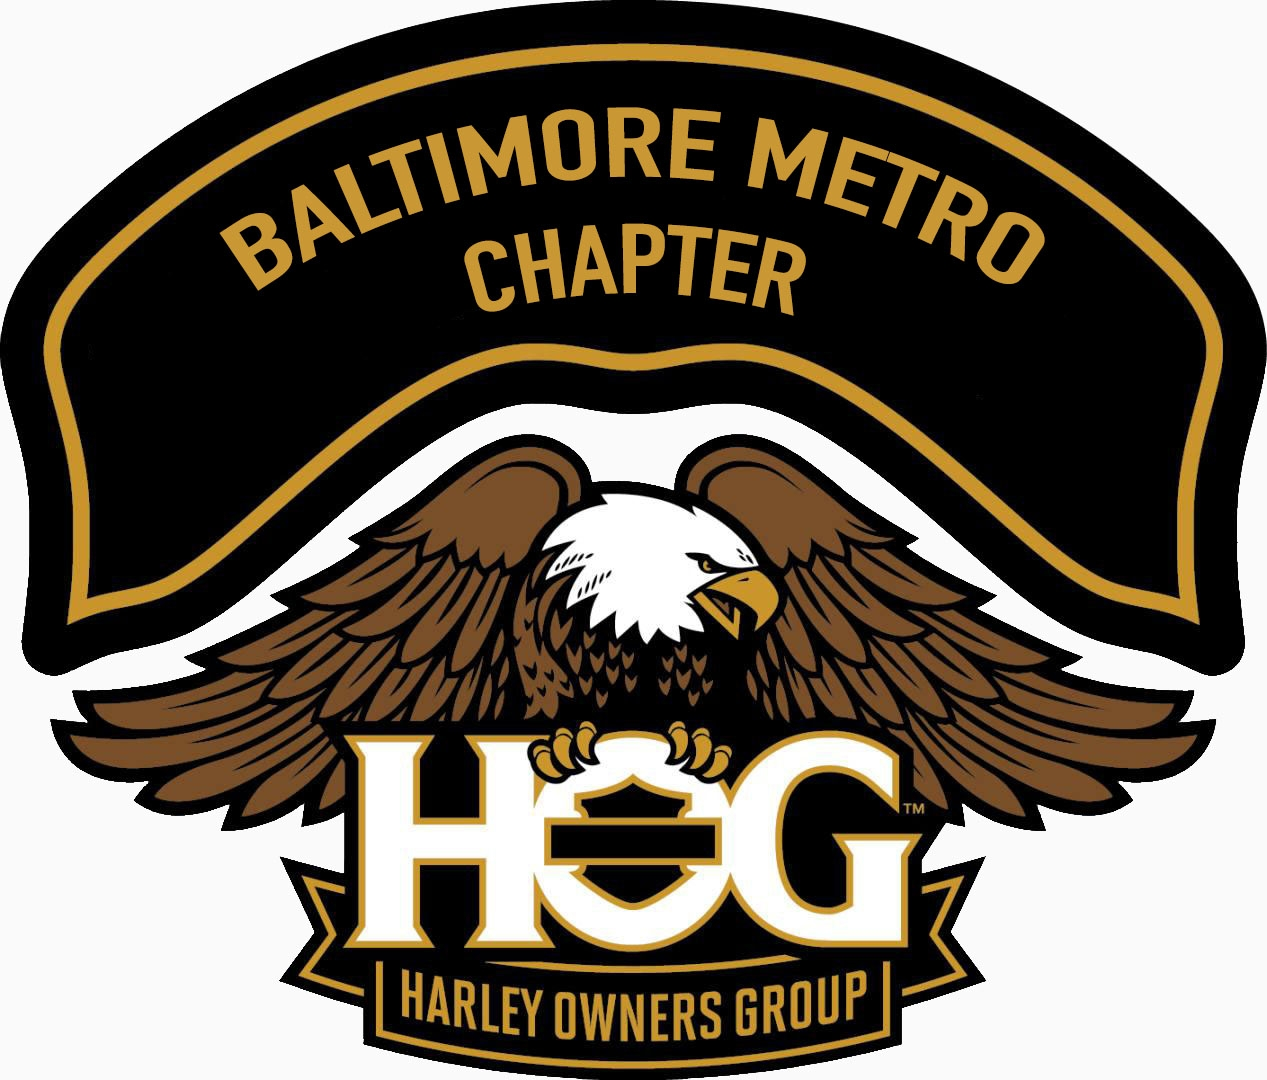 Baltimore Metro HOG